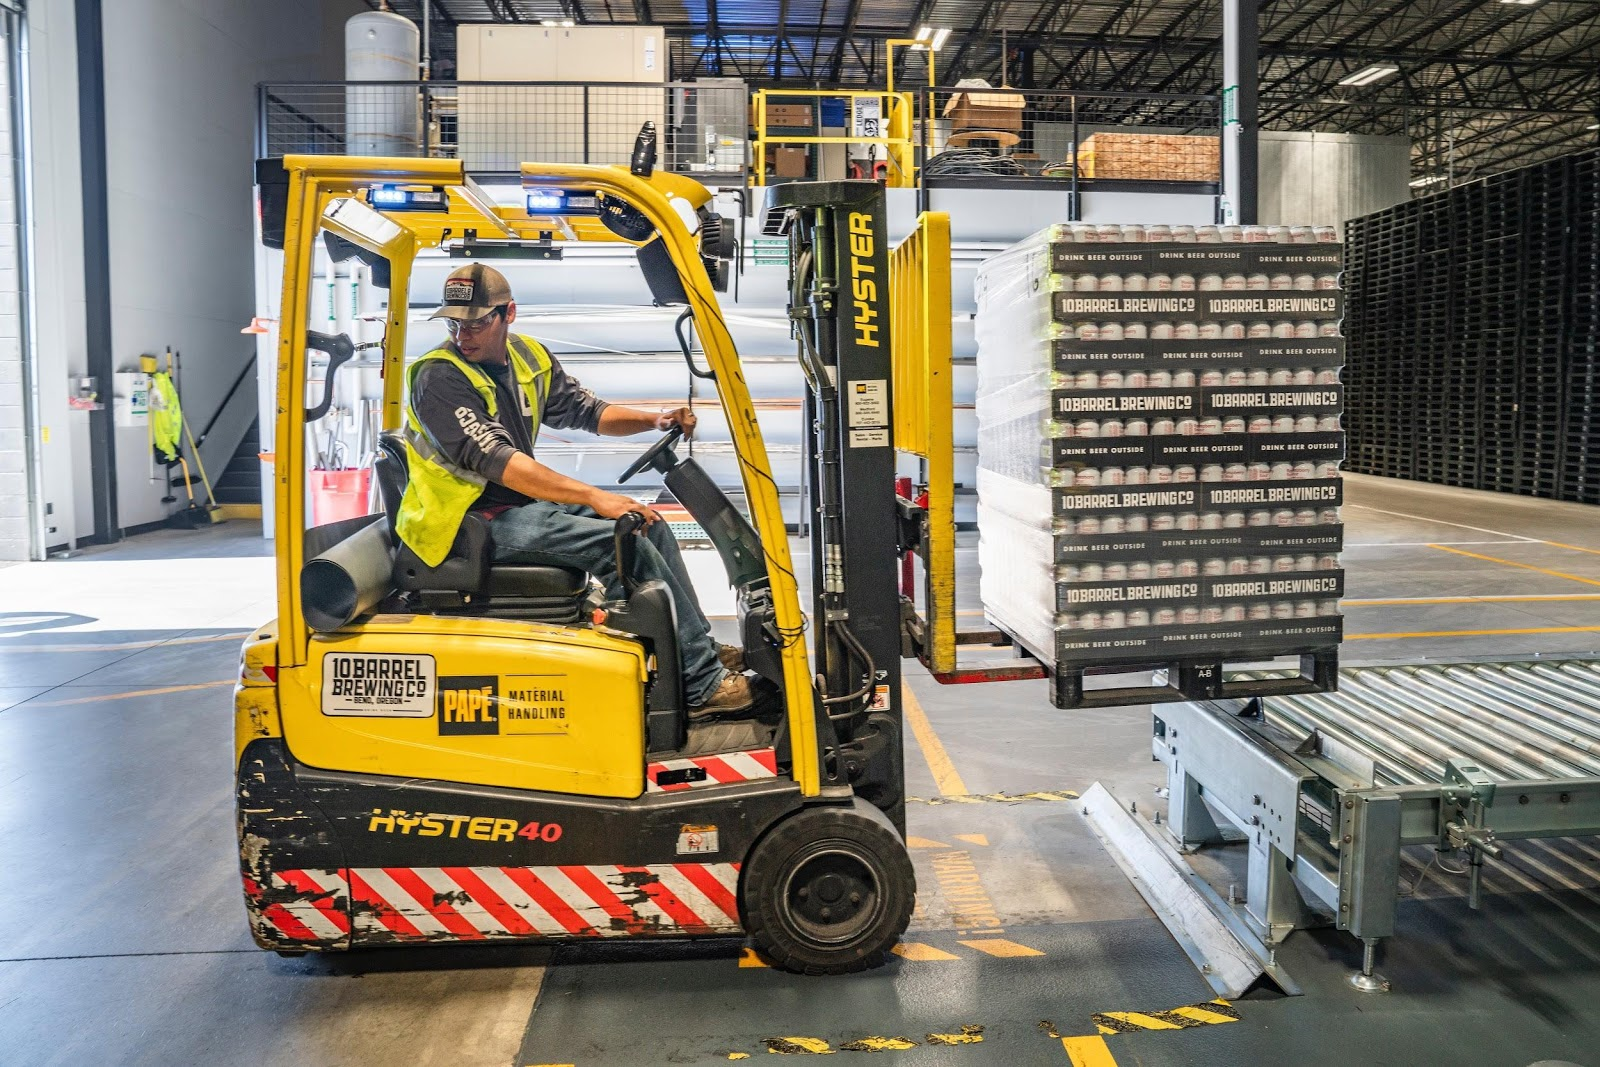 Robots to Manage Warehouses